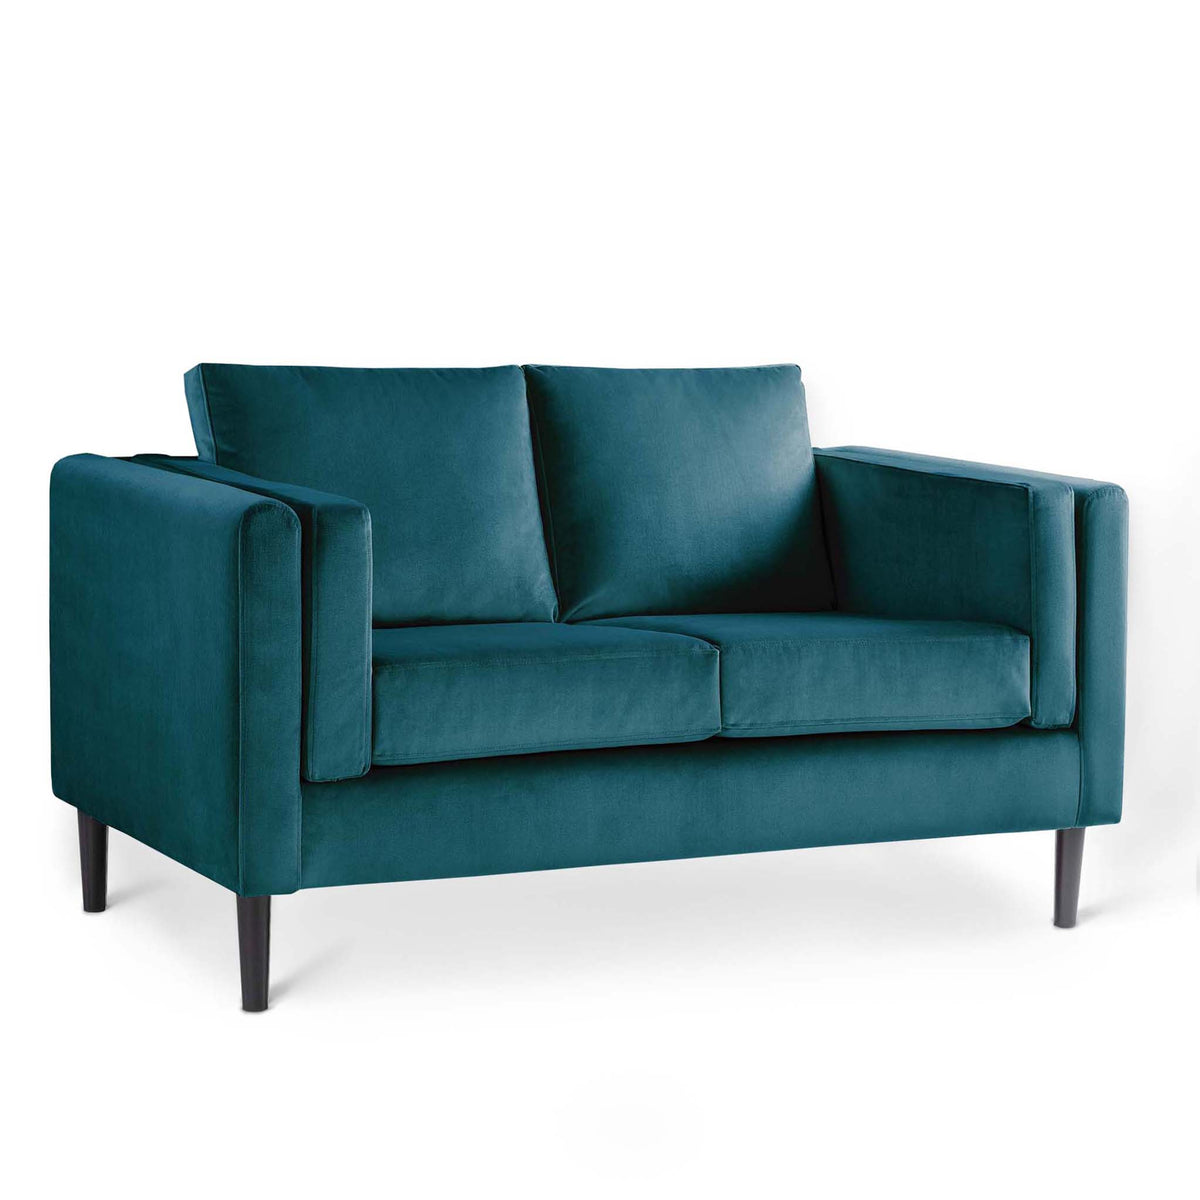 Sandringham Peacock Velvet 2 Seater Sofa from Roseland Furniture